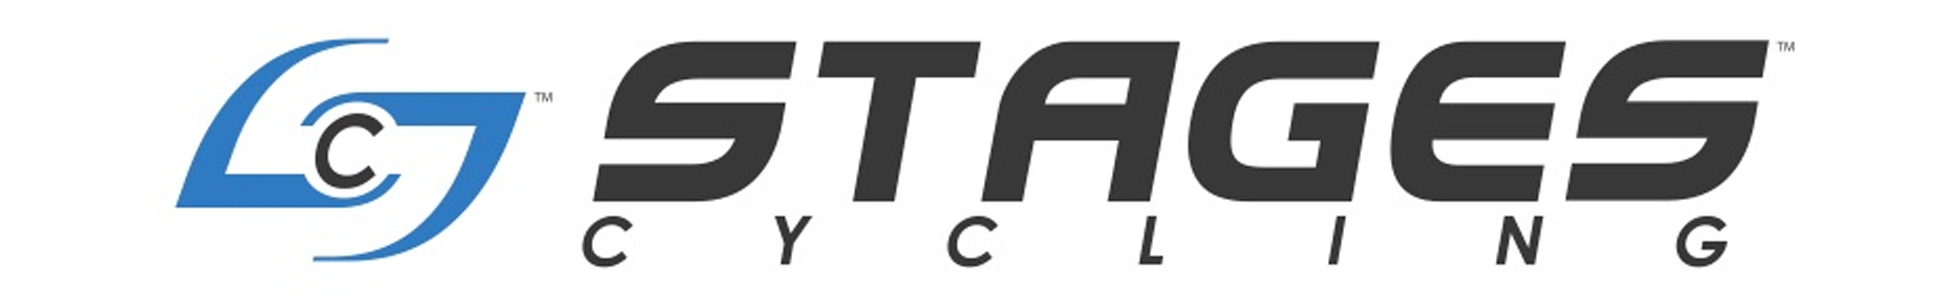 StagesCycle-logo.png